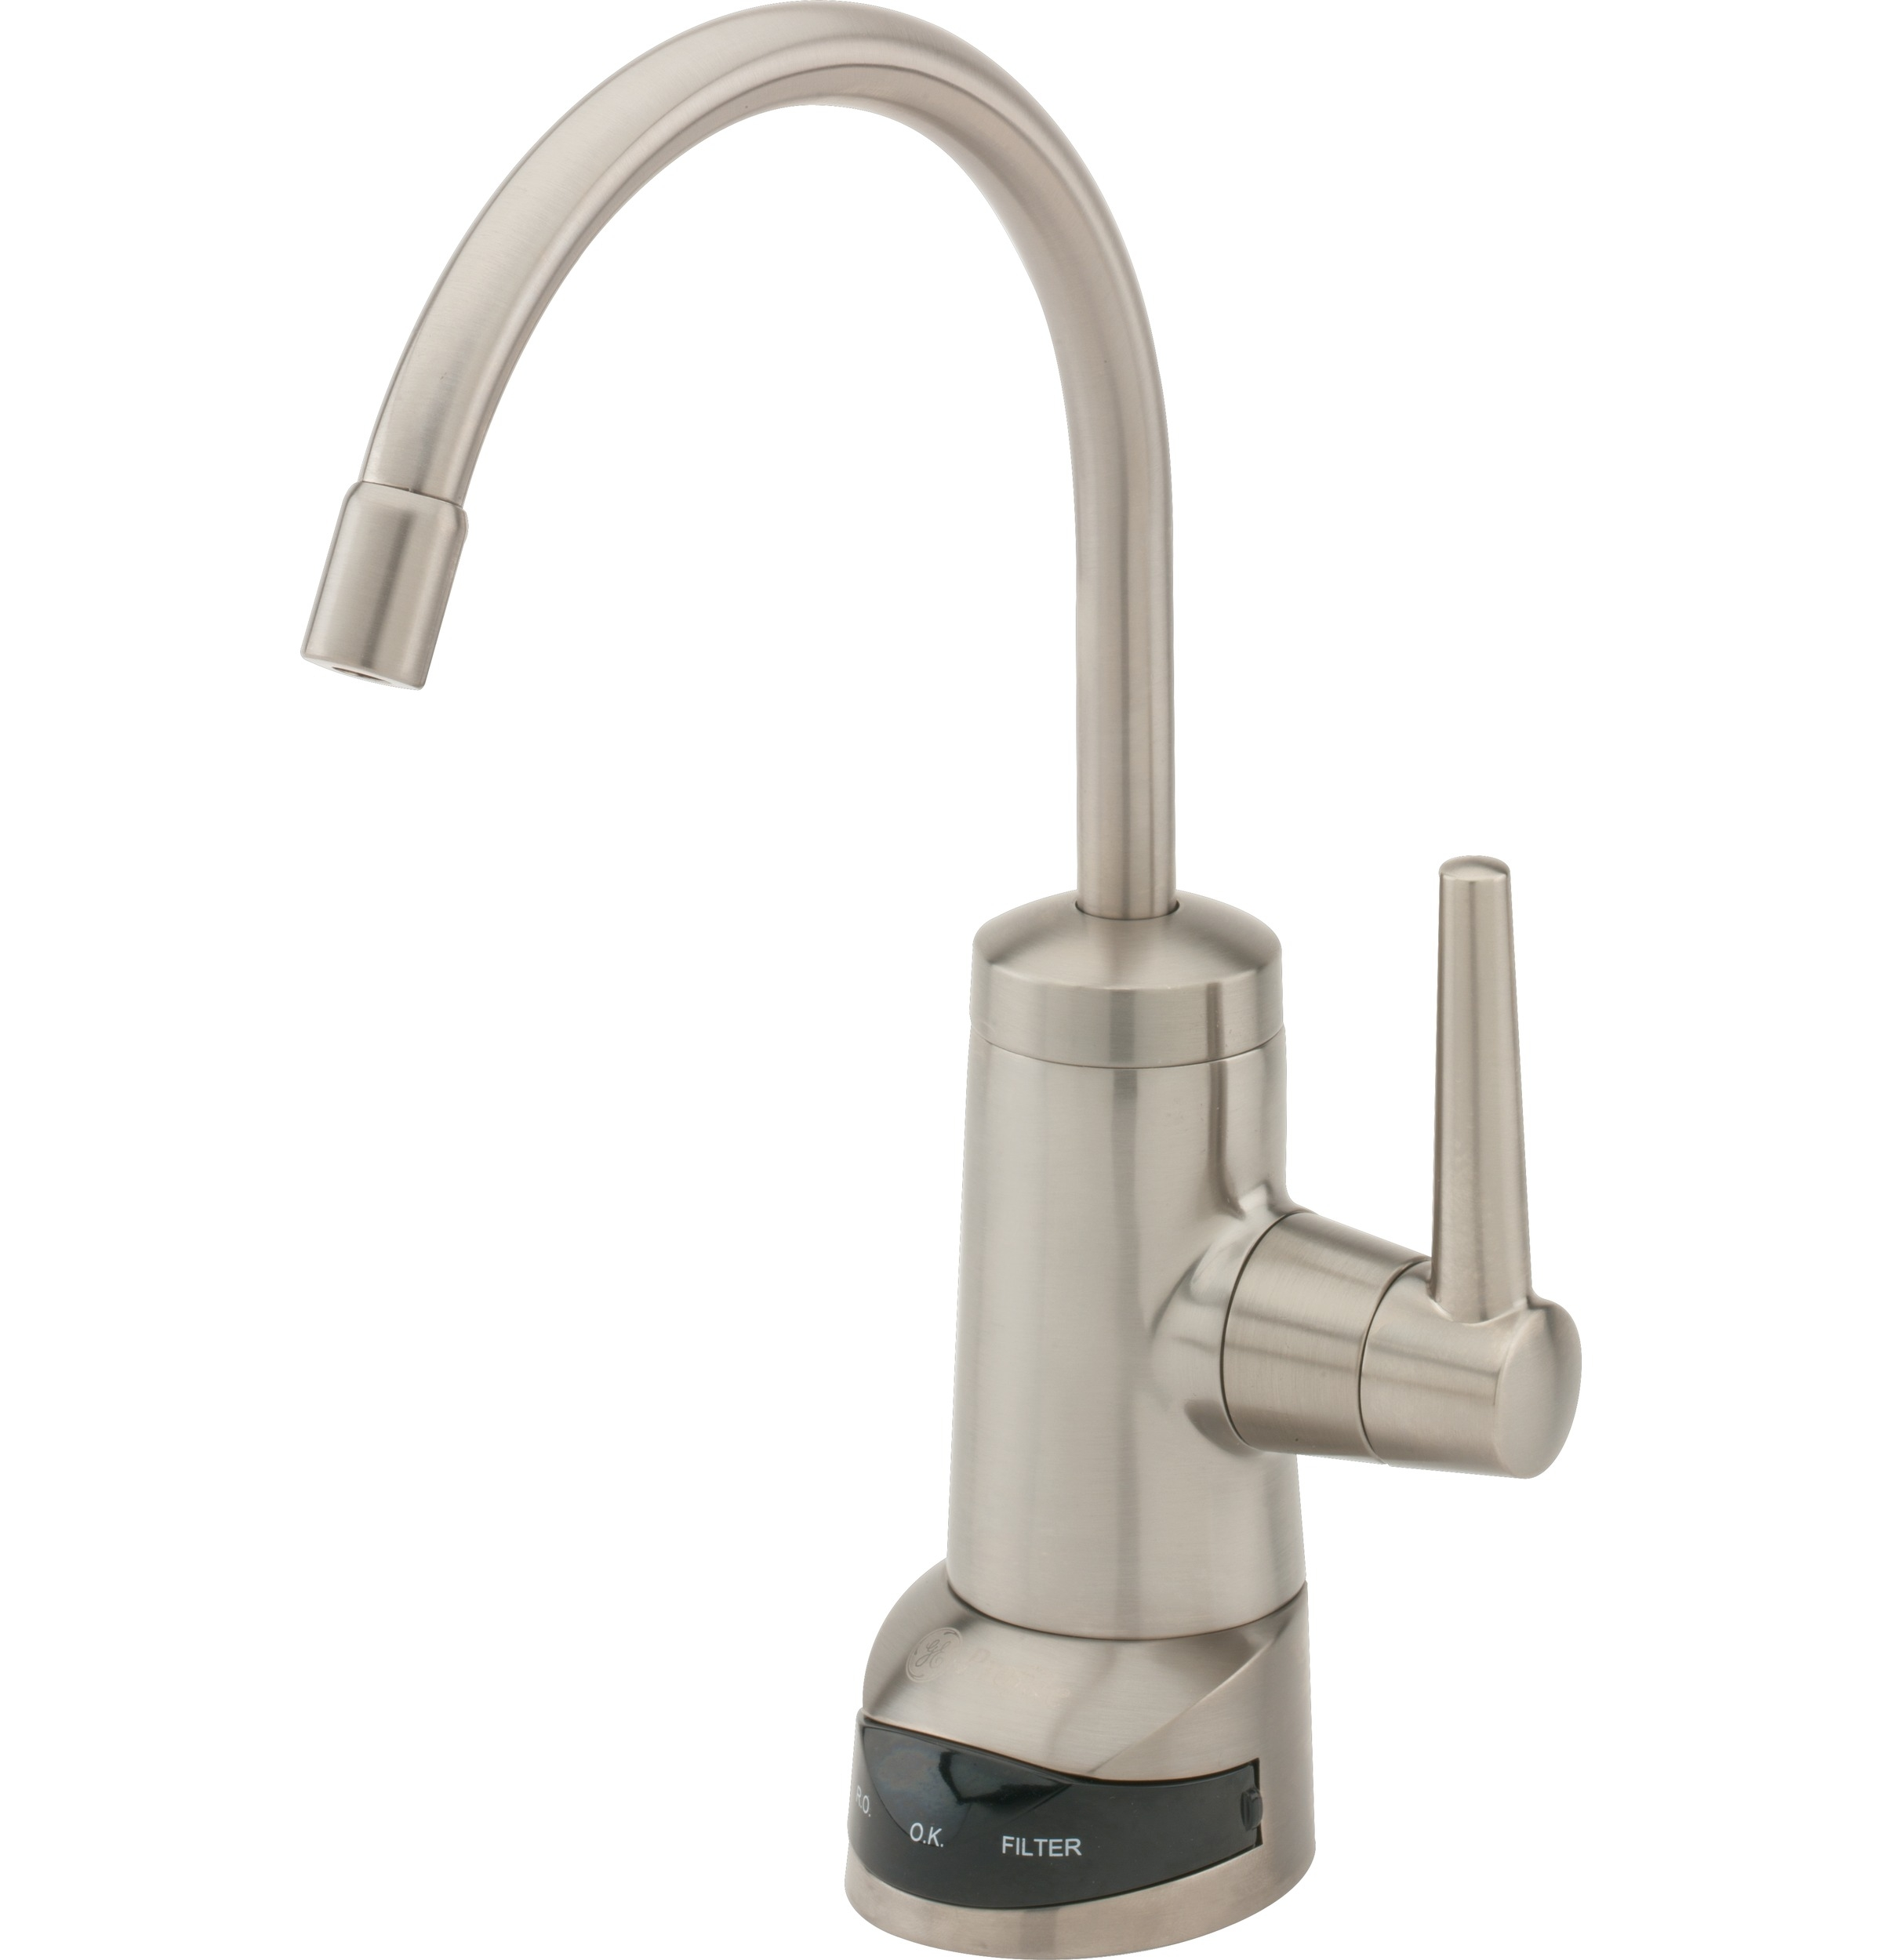 Ideas, water filtration faucets brushed nickel water filtration faucets brushed nickel ge profile reverse osmosis filtration system with brushed nickel 2400 x 2500  .